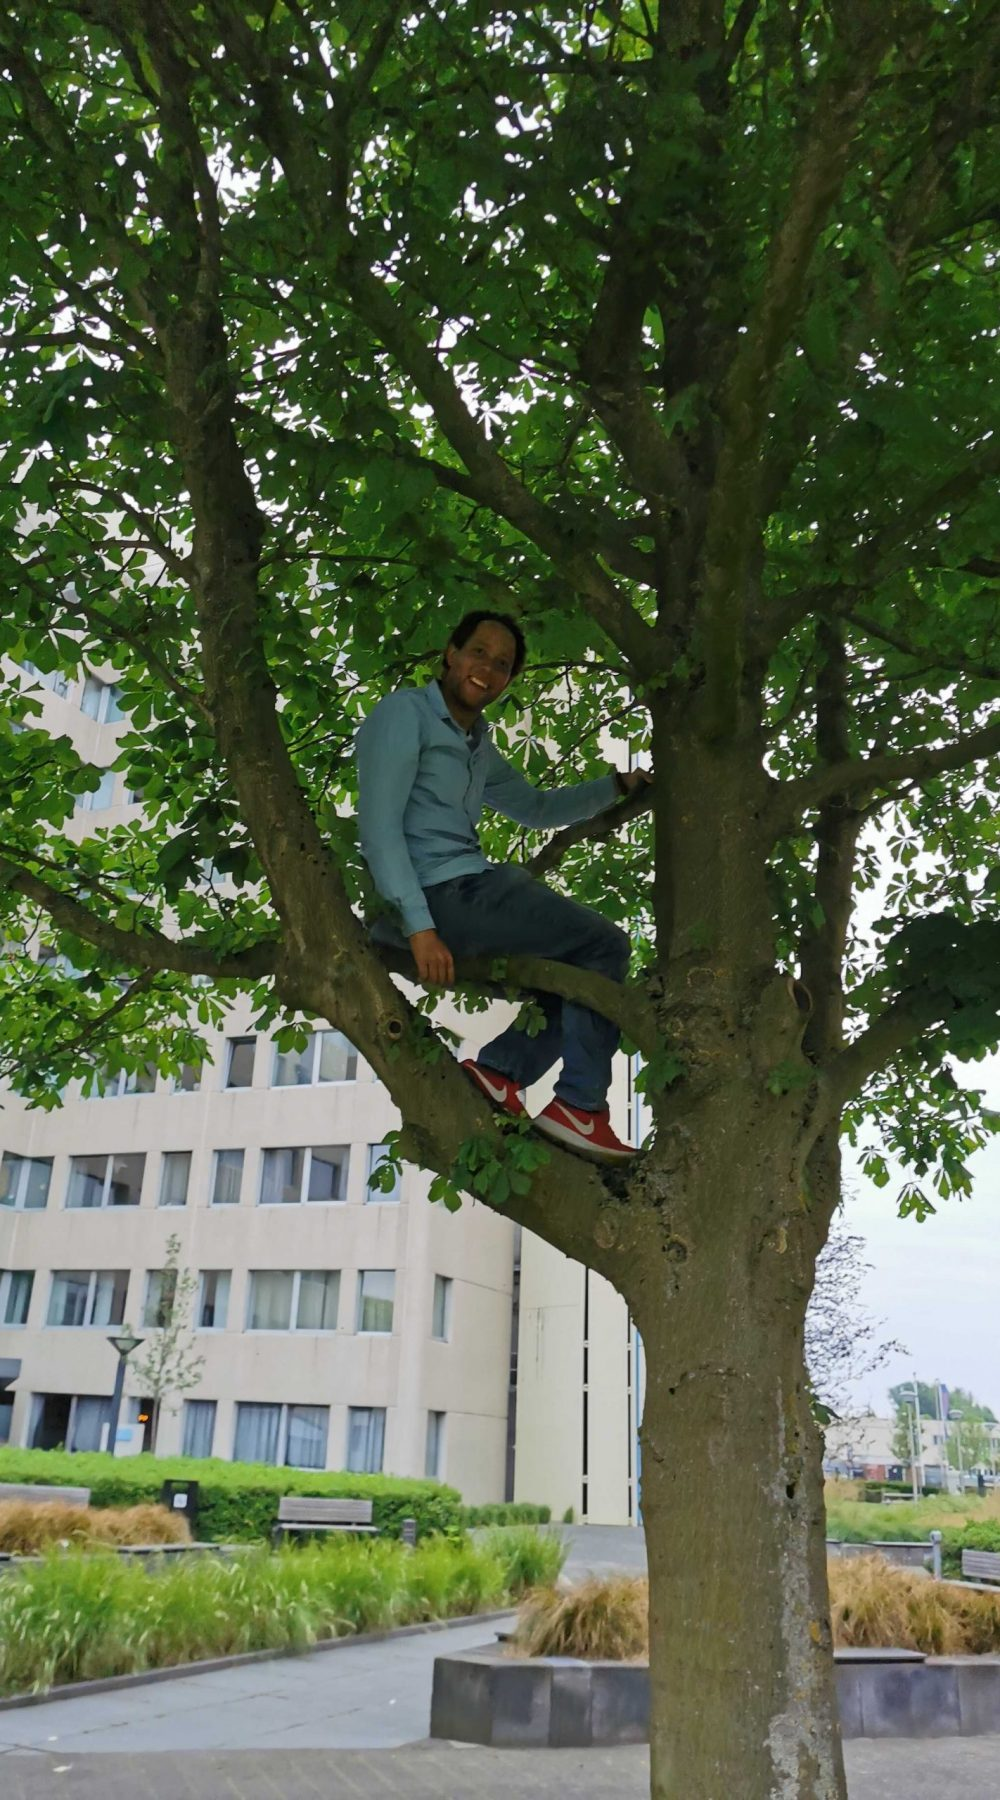 Dirk in the tree